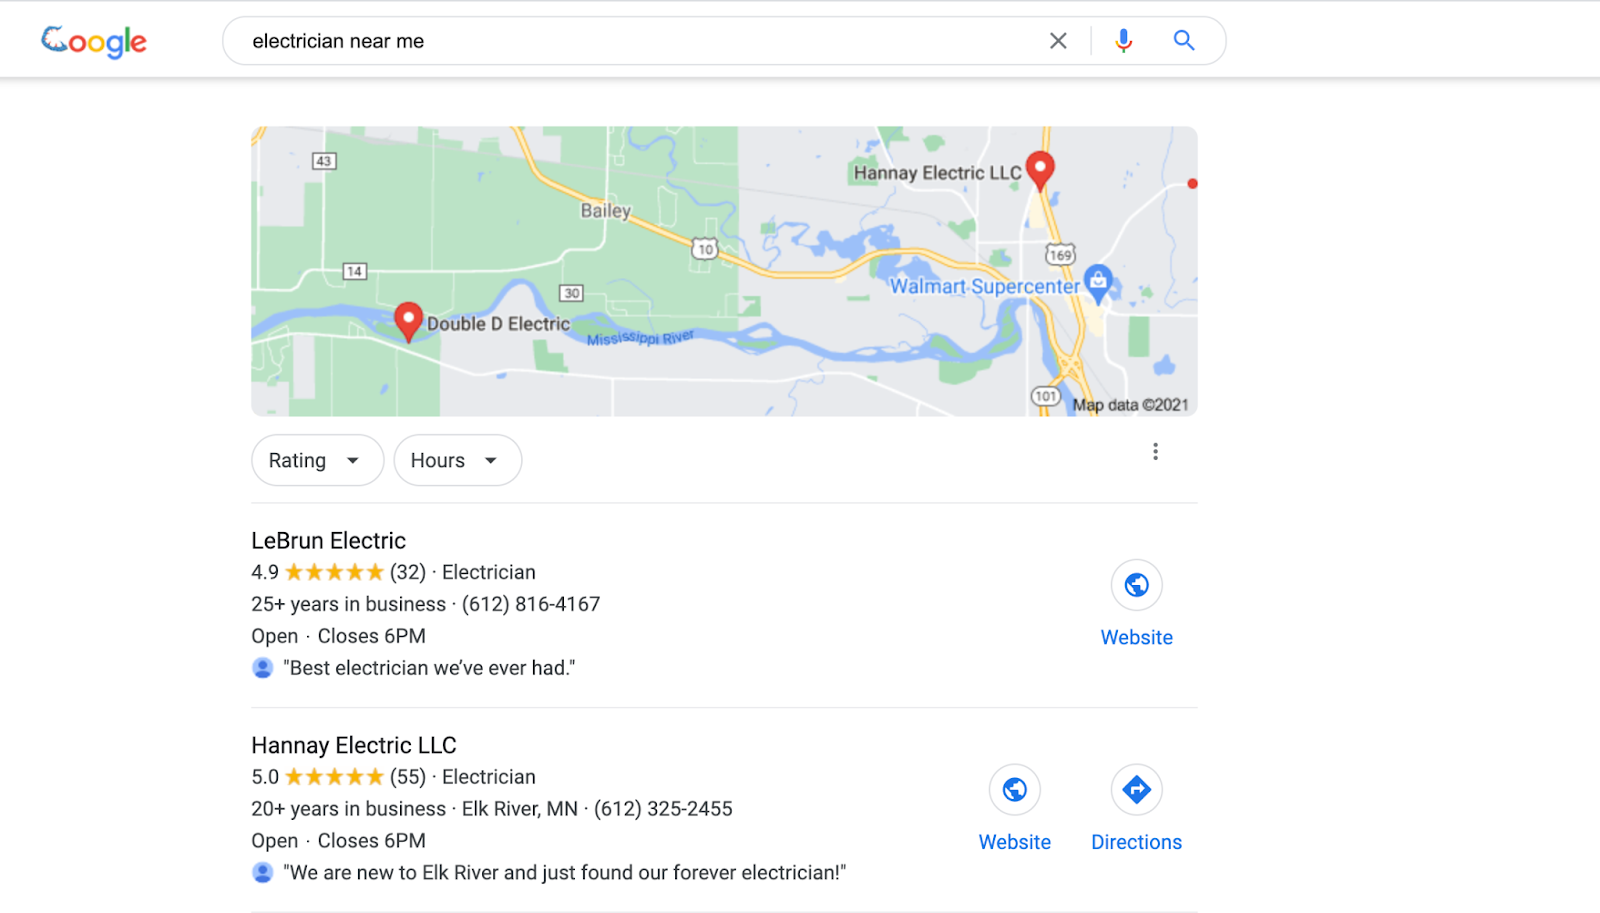 Google search for electrician near me